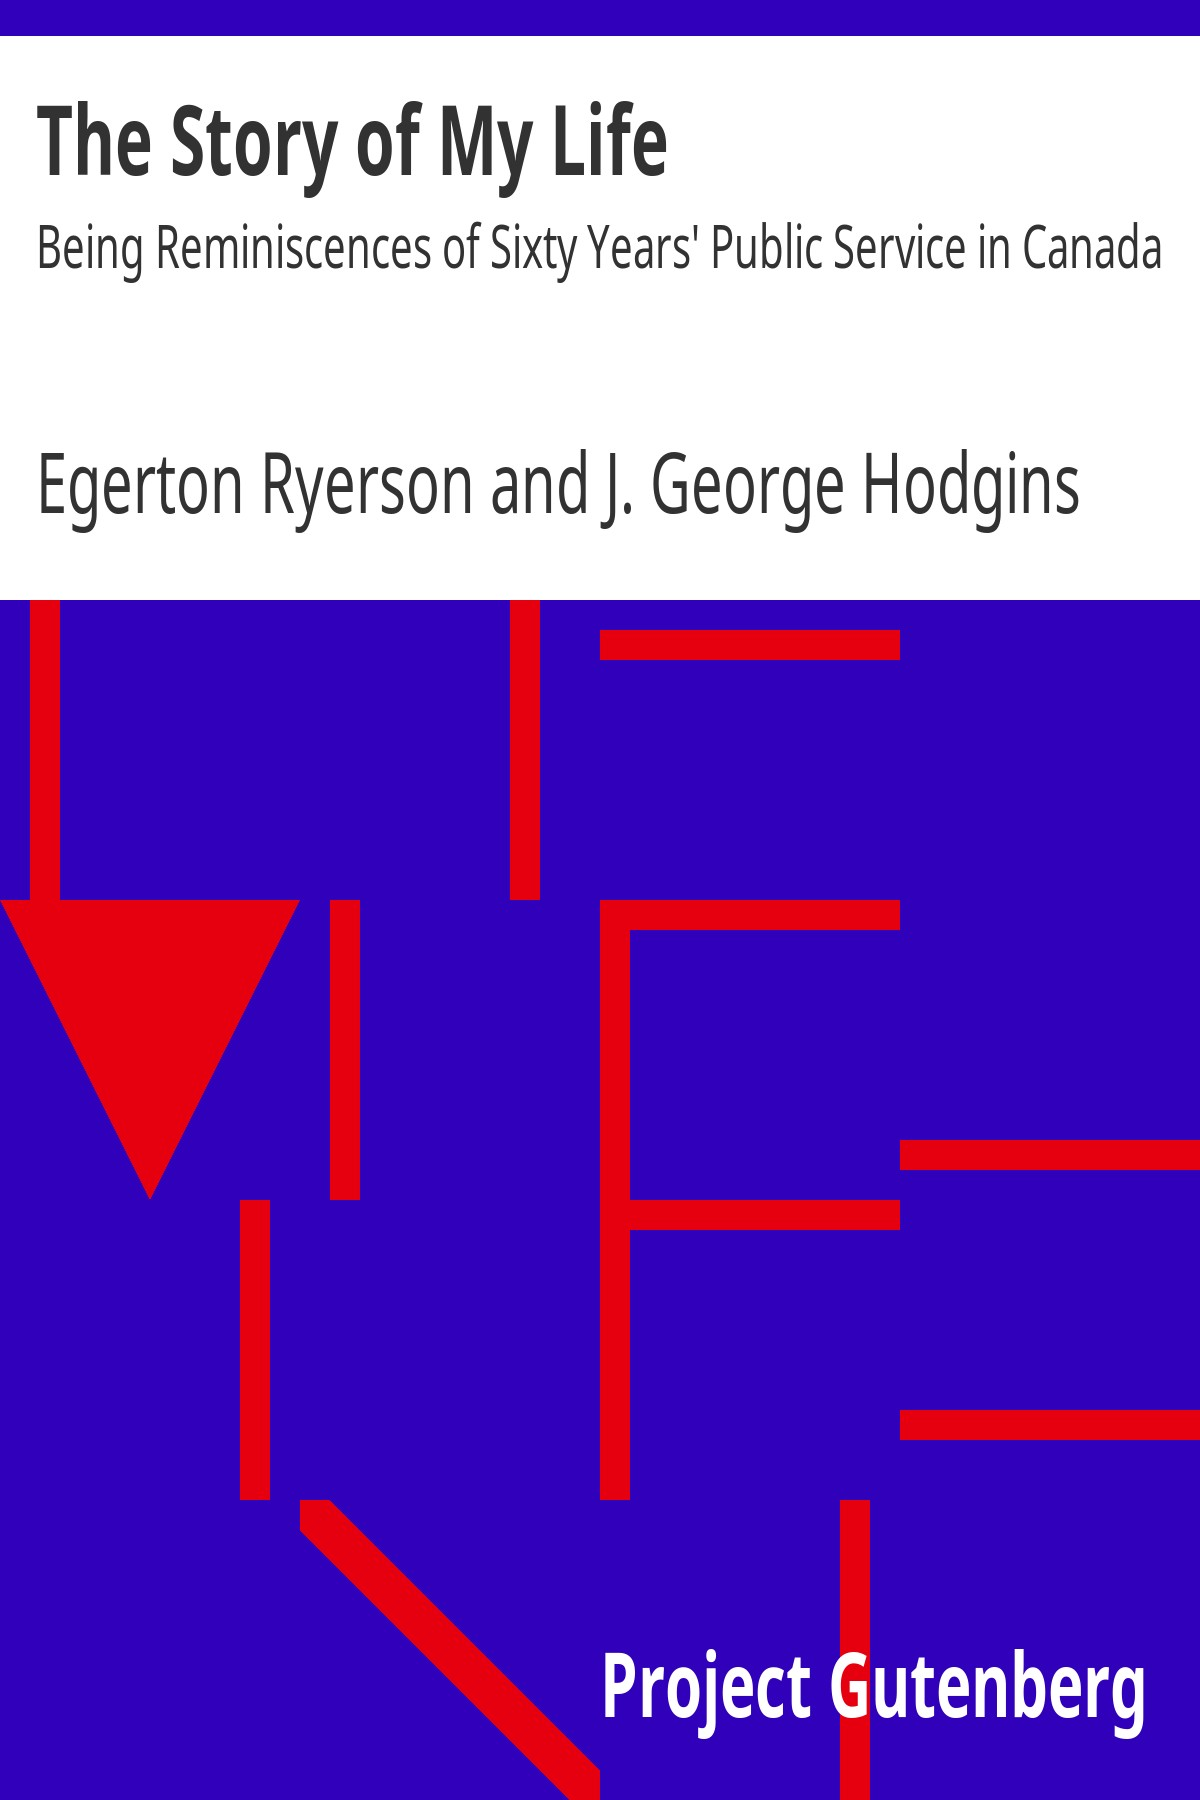 Egerton Ryerson The Story of My Life Being Reminiscences of Sixty Years' Public Service in Canada